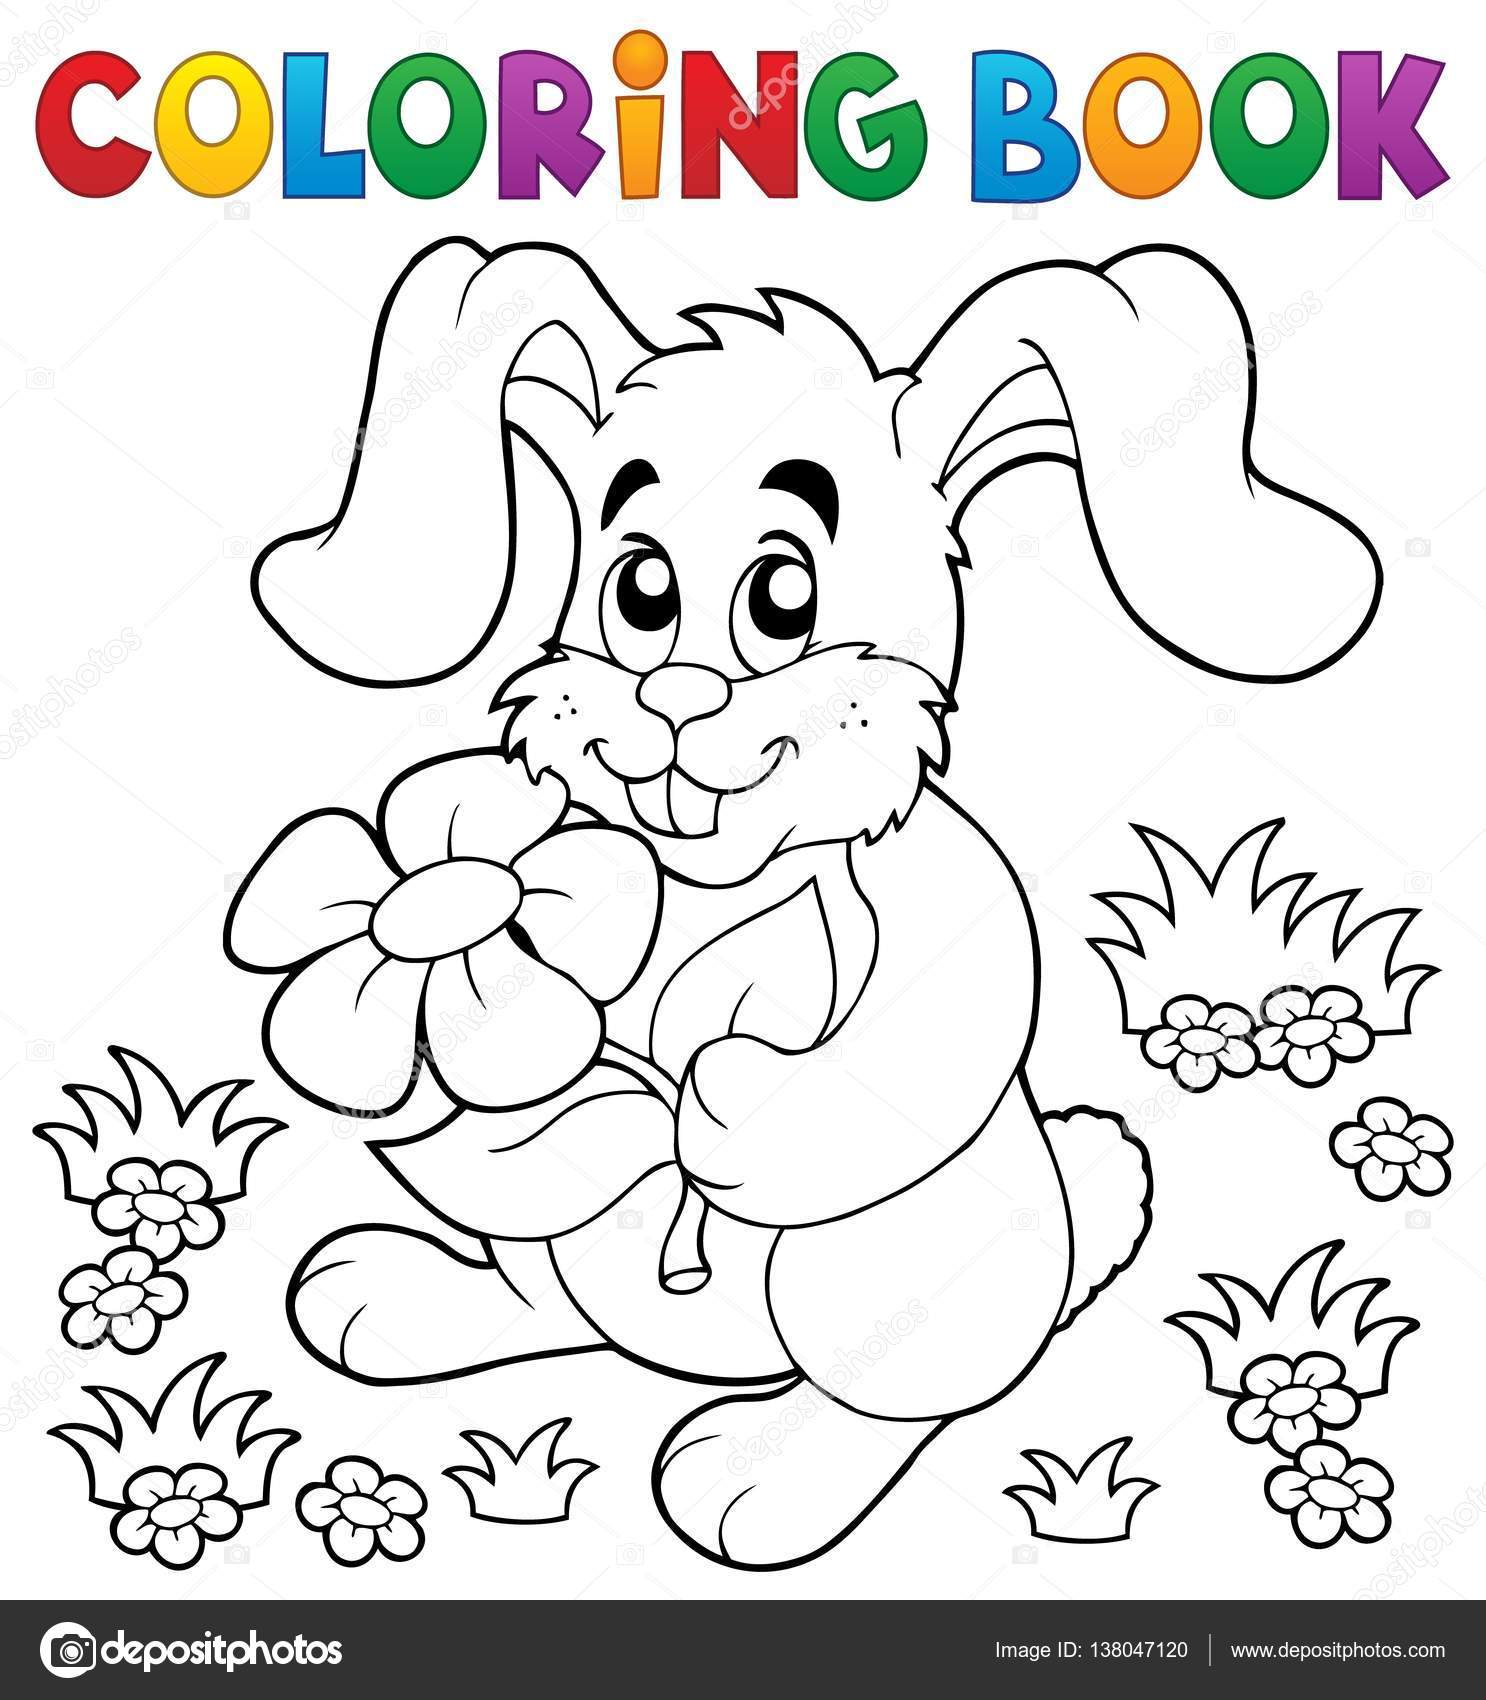 coloring book easter rabbit theme 3 eps10 vector illustration vector by clairev